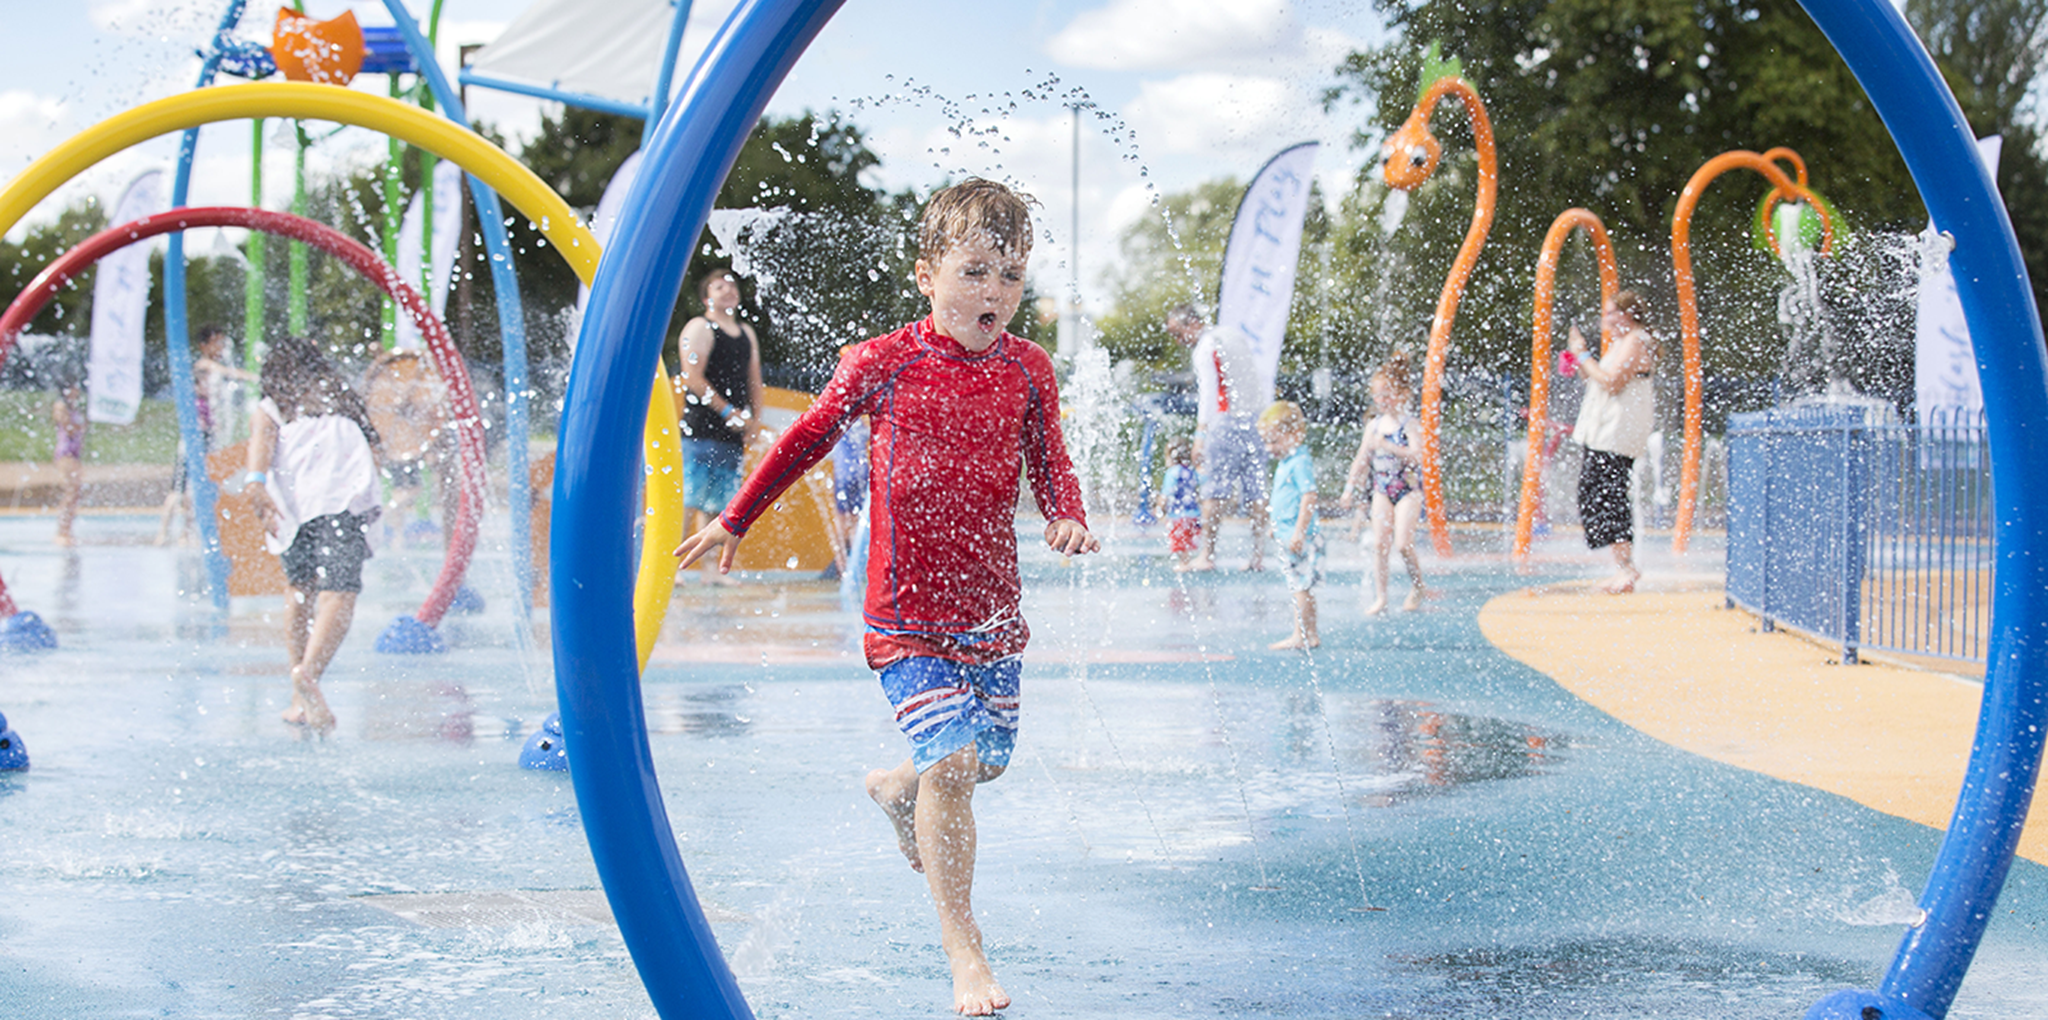 Splashpad-Willen-Lake-children-happy.png